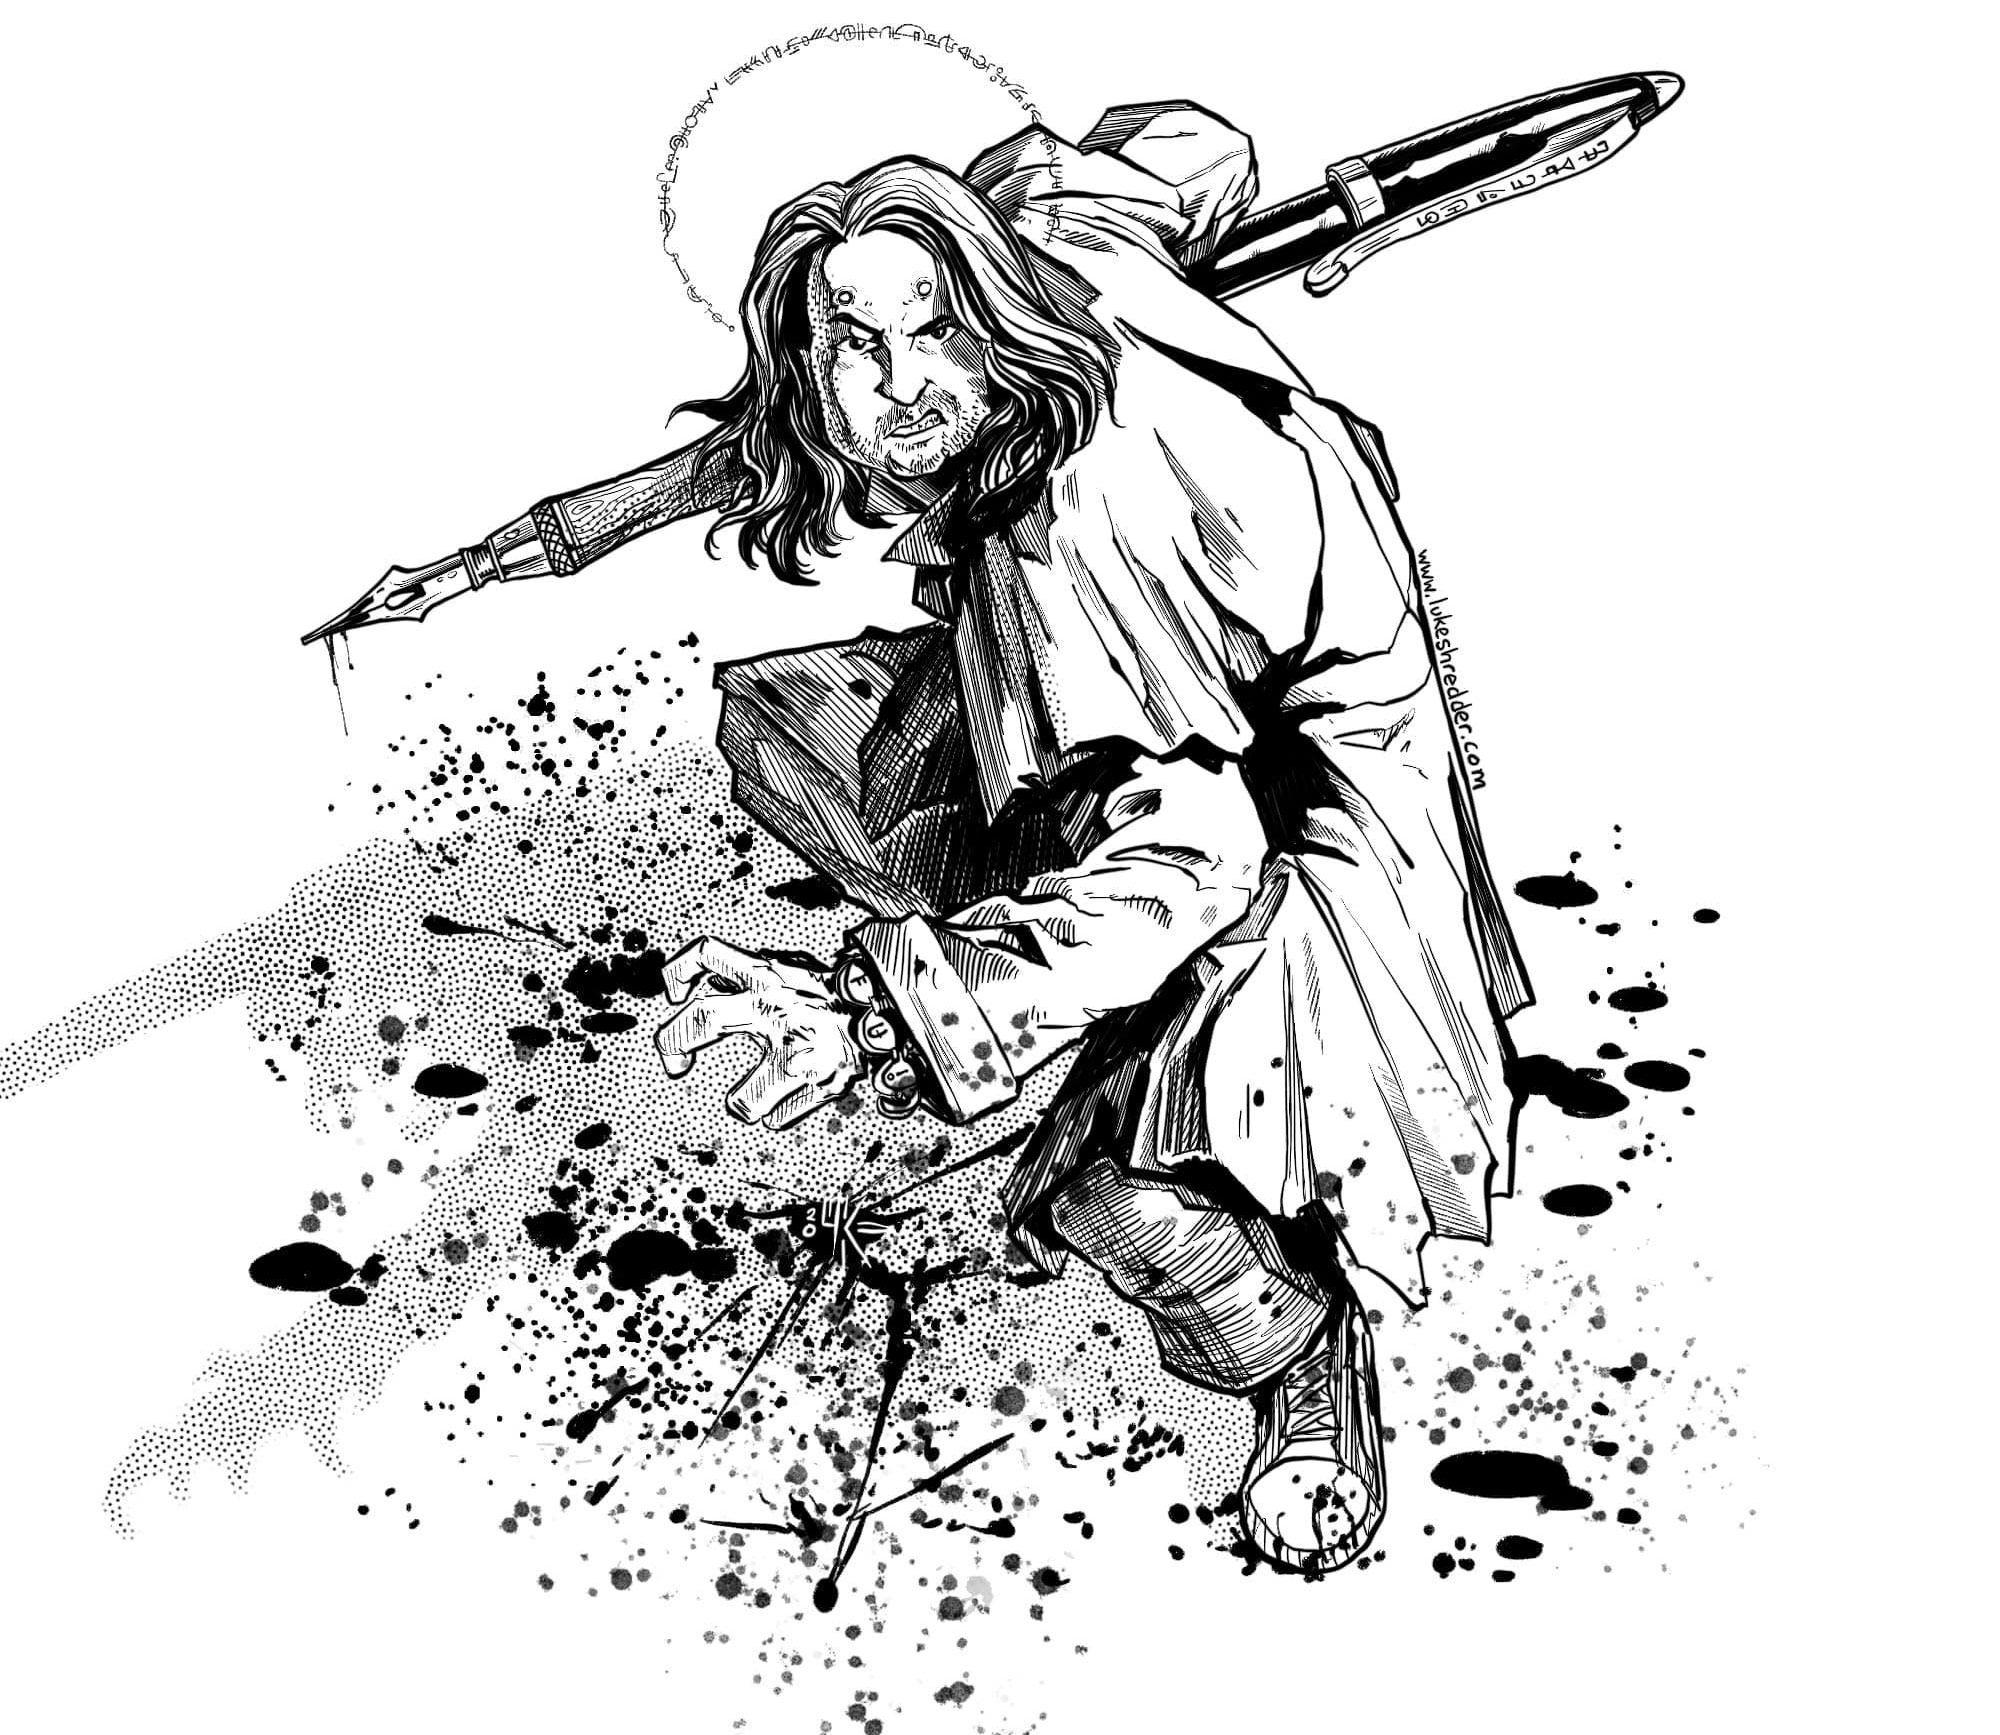 Illustration of Jim in an aggressive stance, holding a massive fountain pen like a weapon, covered in spatters of ink reminiscent of blood